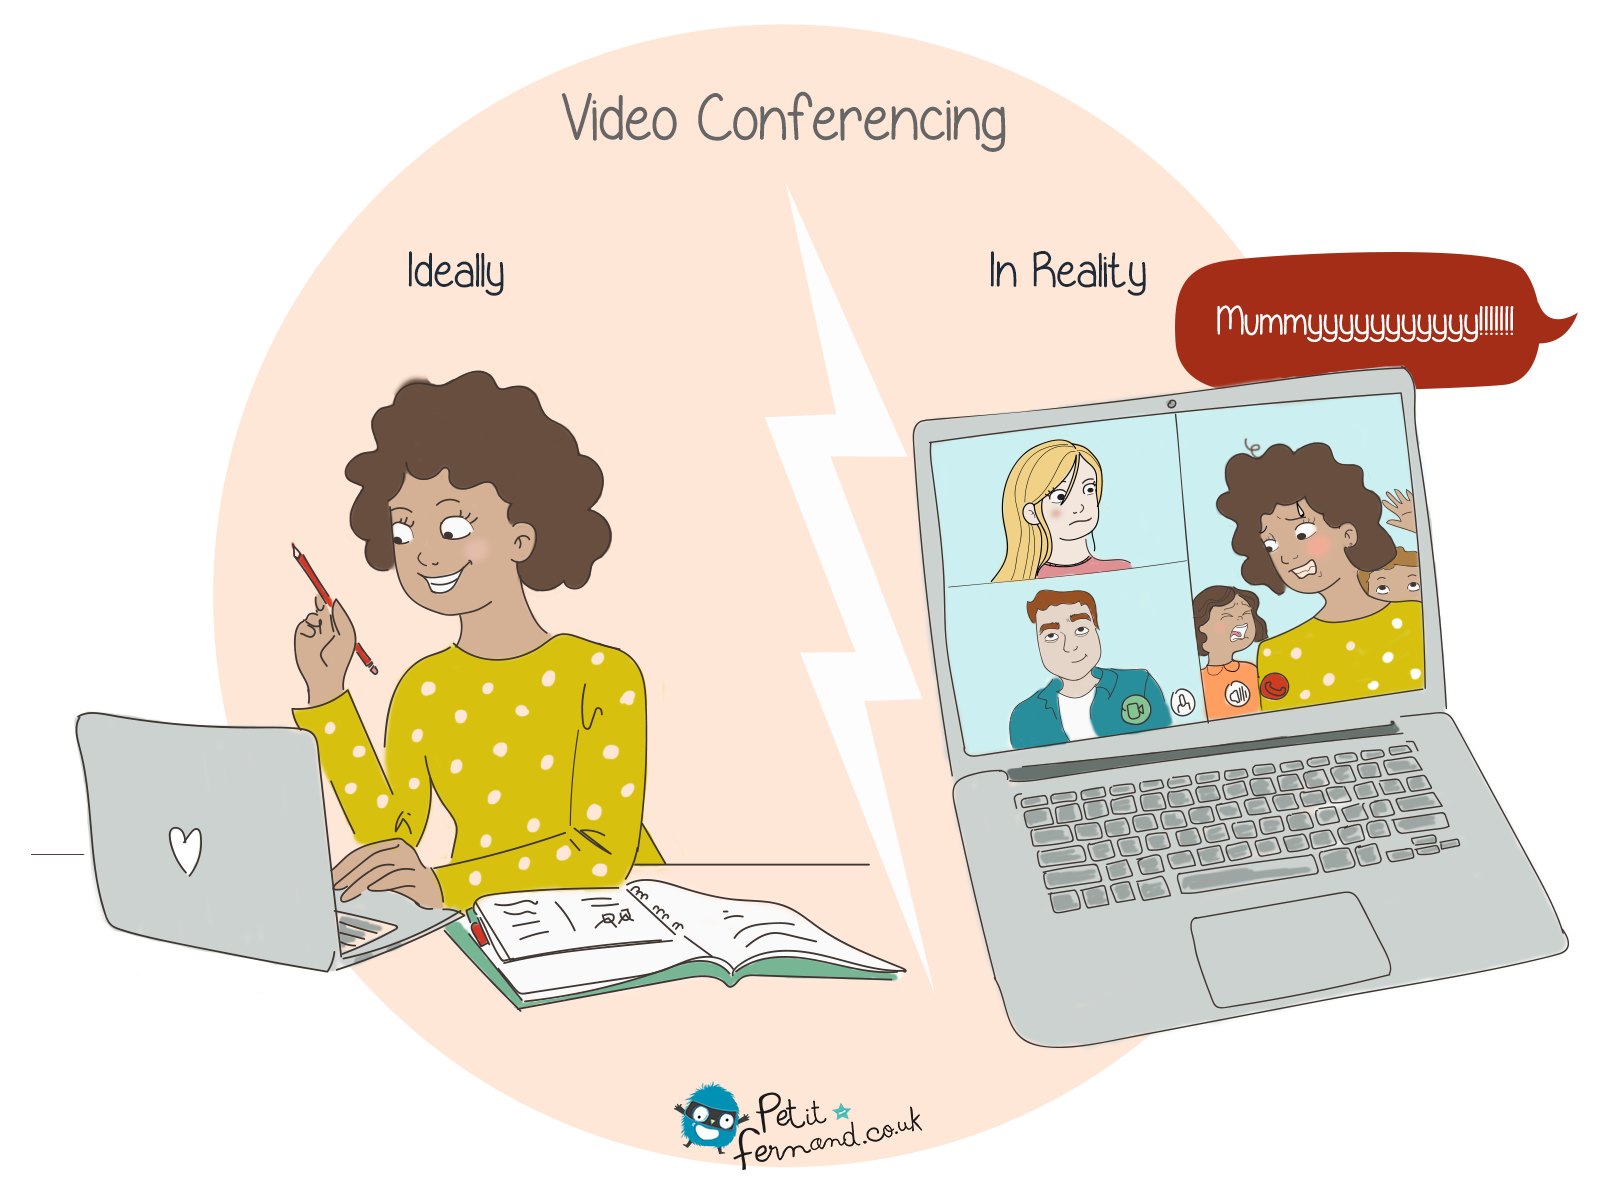 During confinement, we all experienced working from home and video conferences in the living room with our children